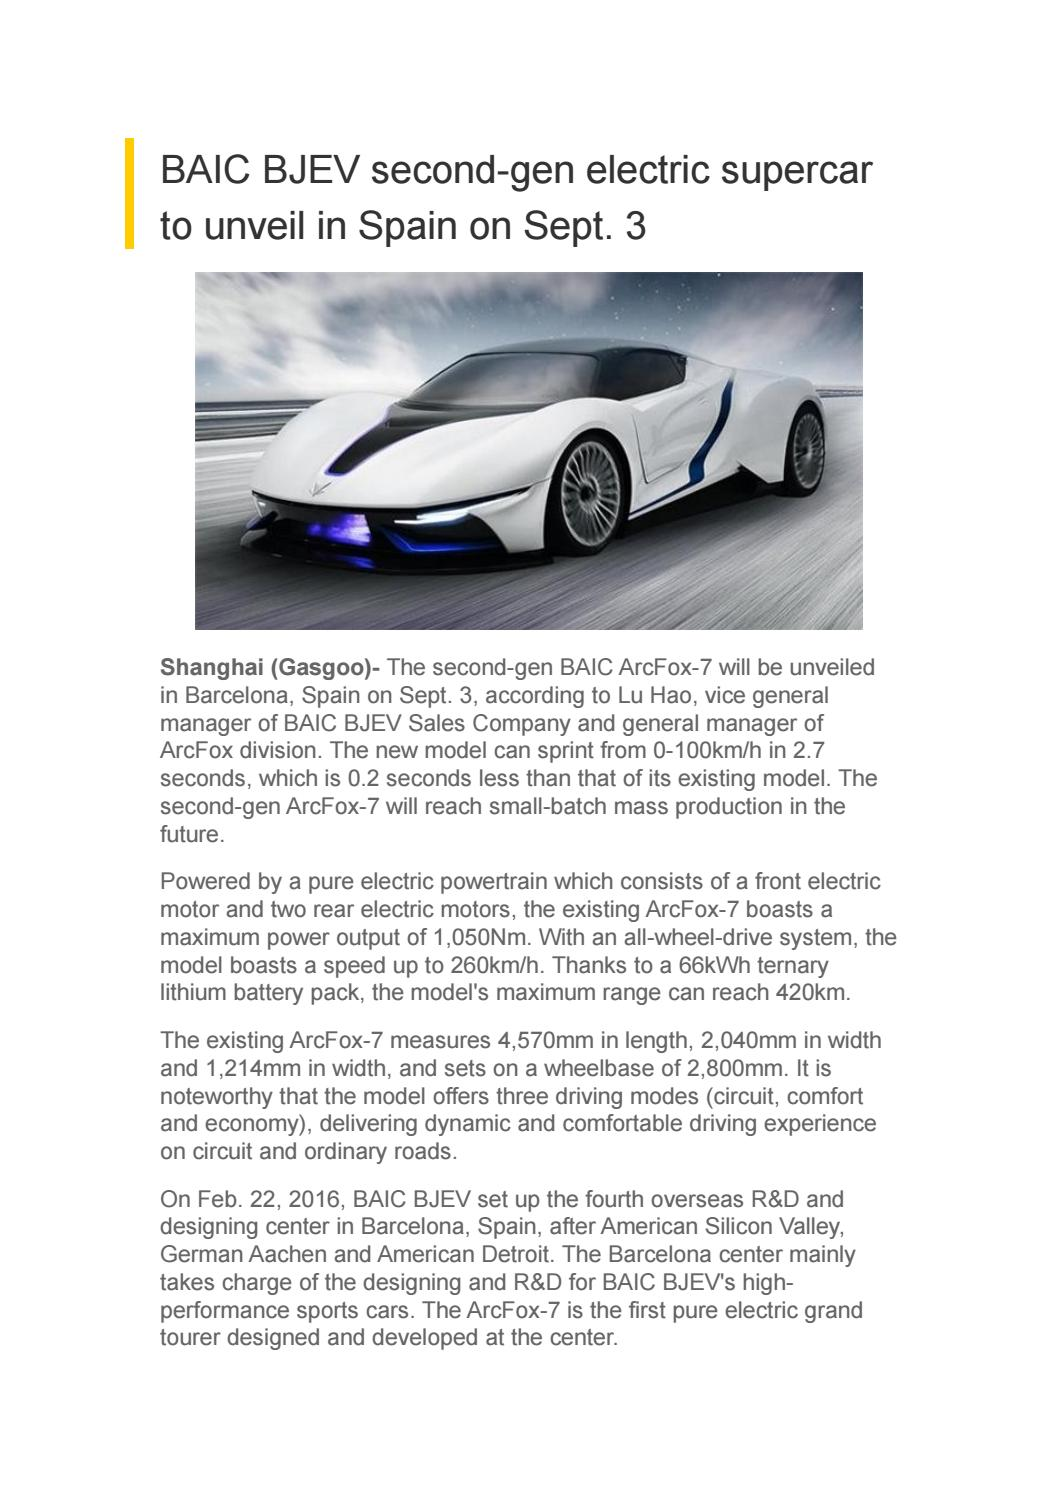 Baic Bjev Second Gen Electric Supercar To Unveil In Spain On Sept